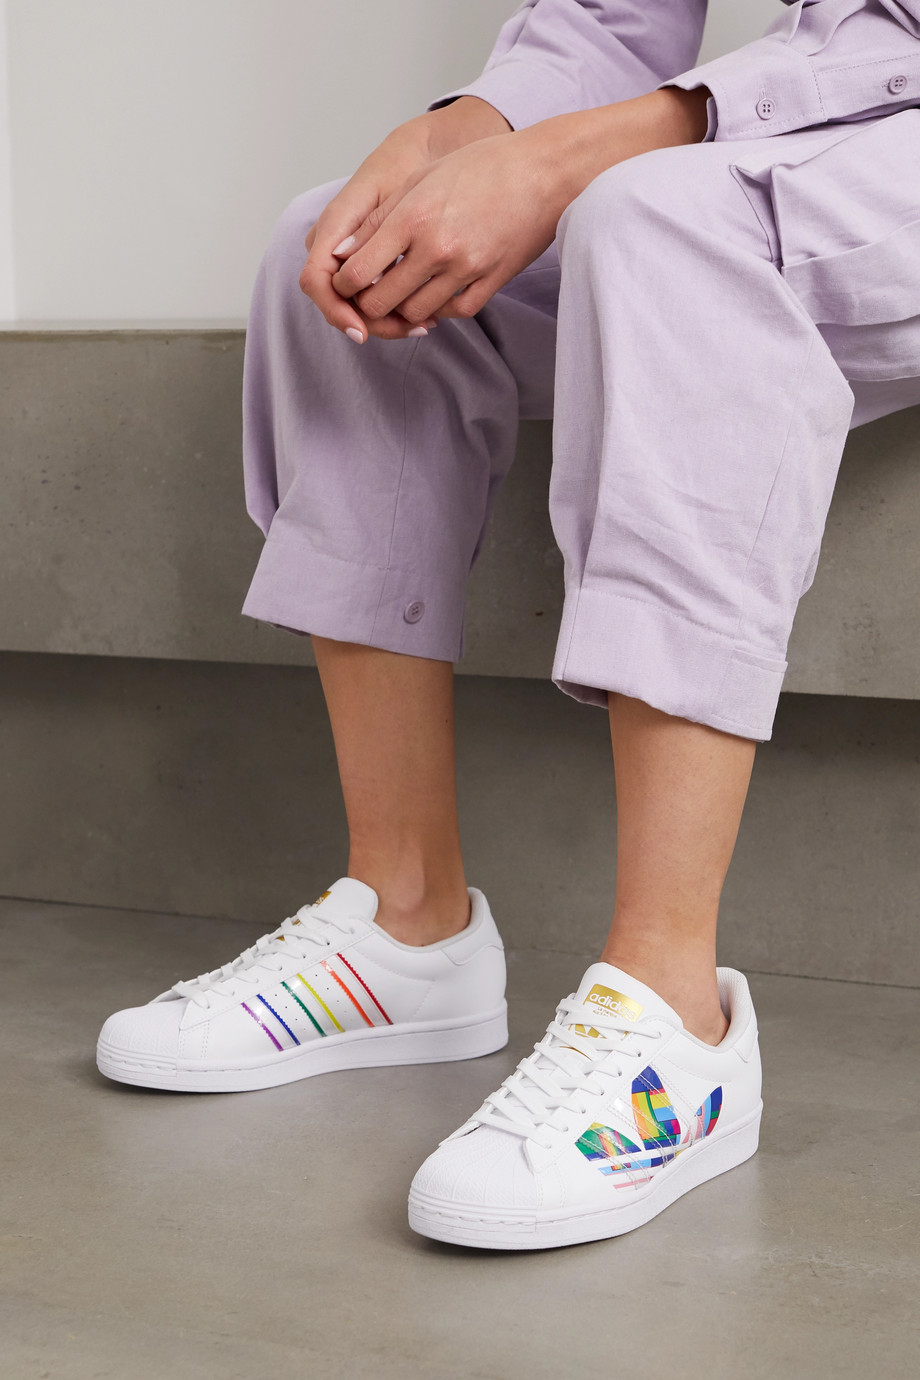 adidas Originals Superstar Pride leather sneakers